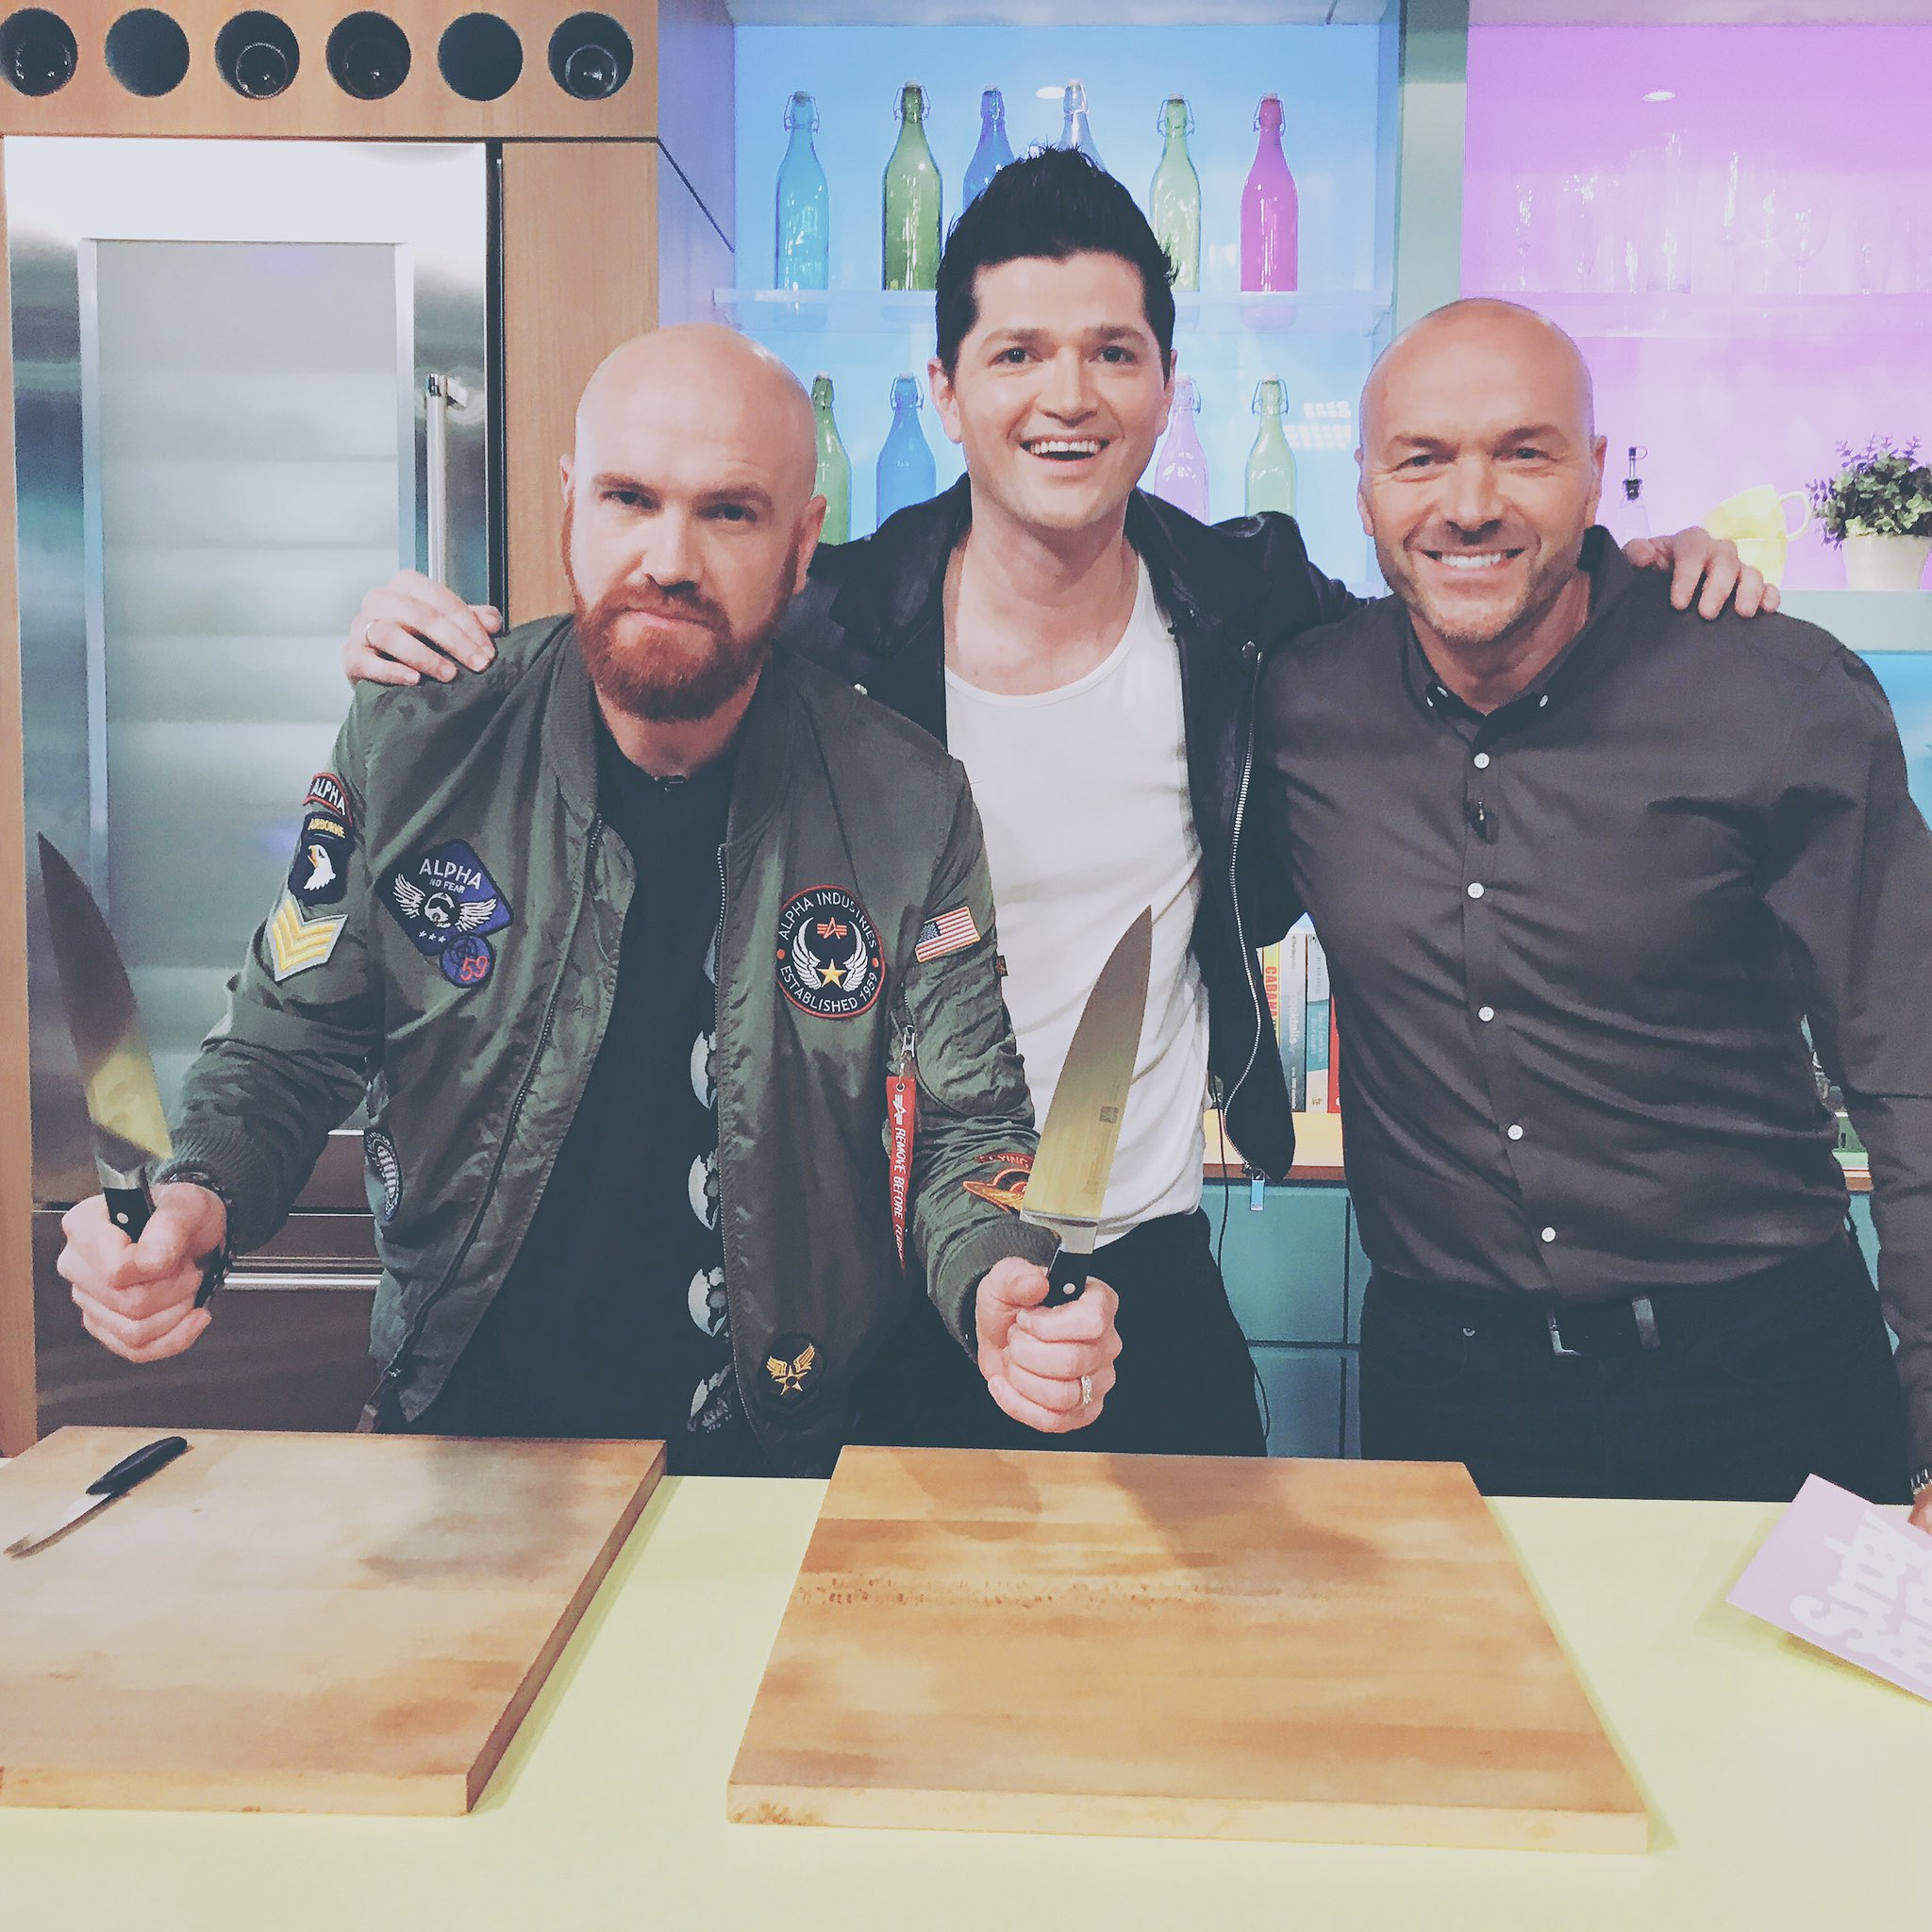 RT @thescript: If you're tuned in tweet us with #TheScriptRain ⛈ https://t.co/iD0fq2ubGA